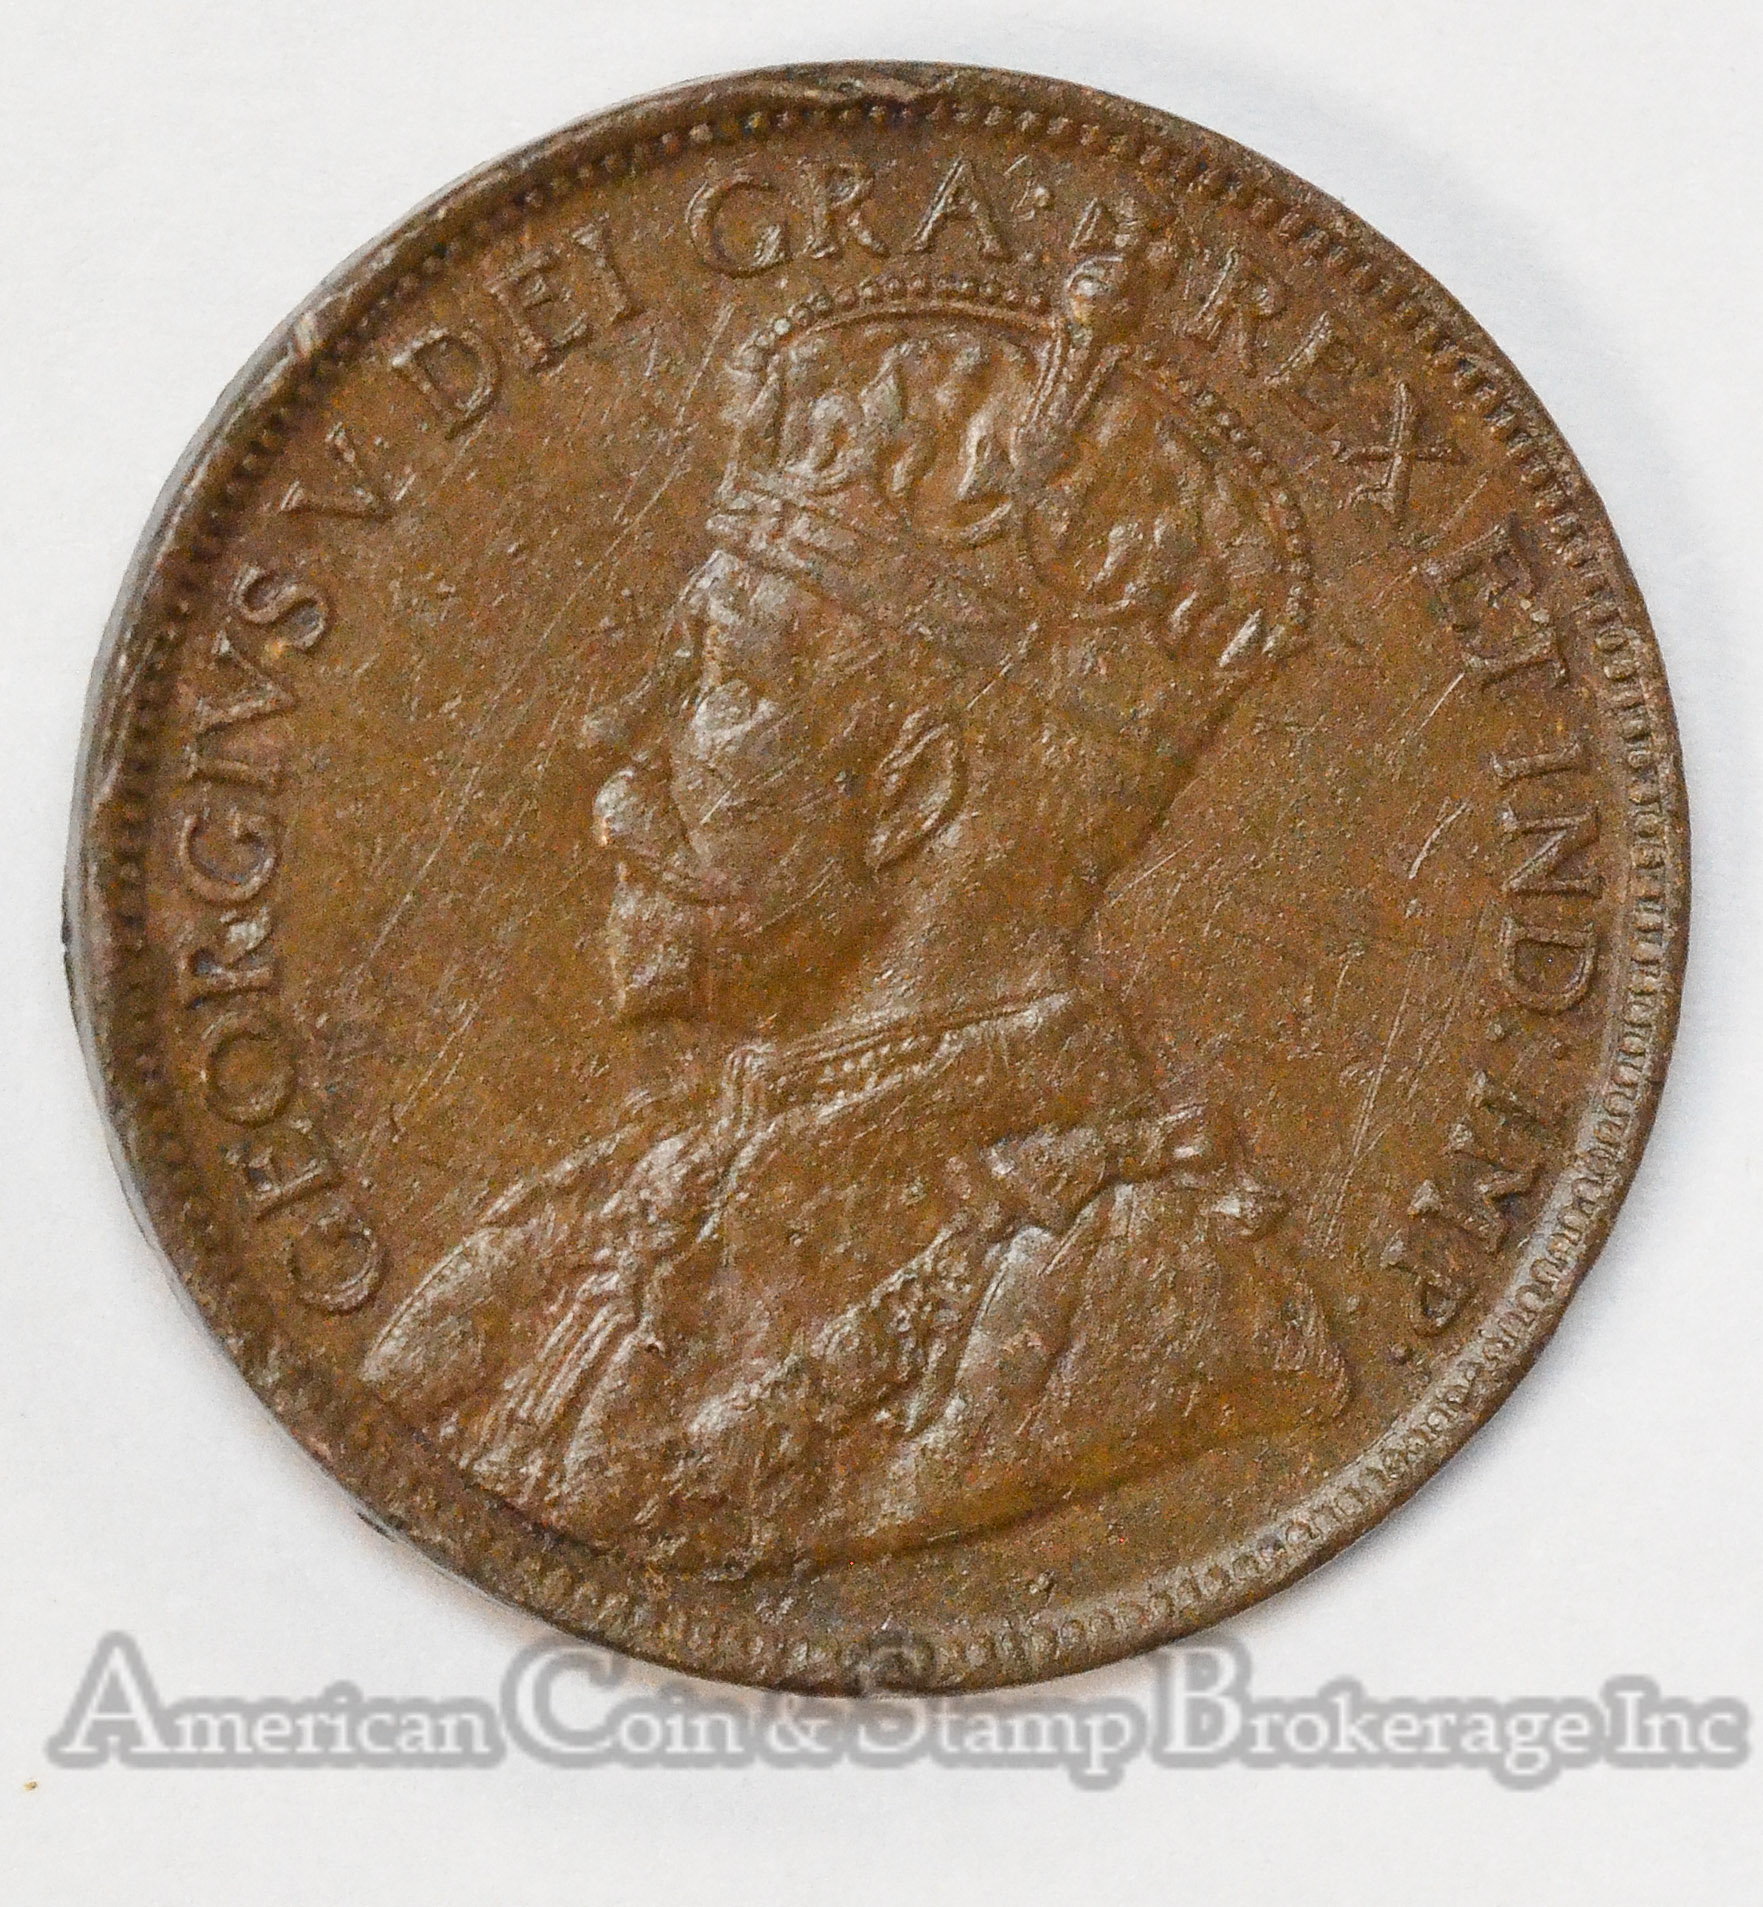 Canada 1c One Cent 1917 bronze King George V 2